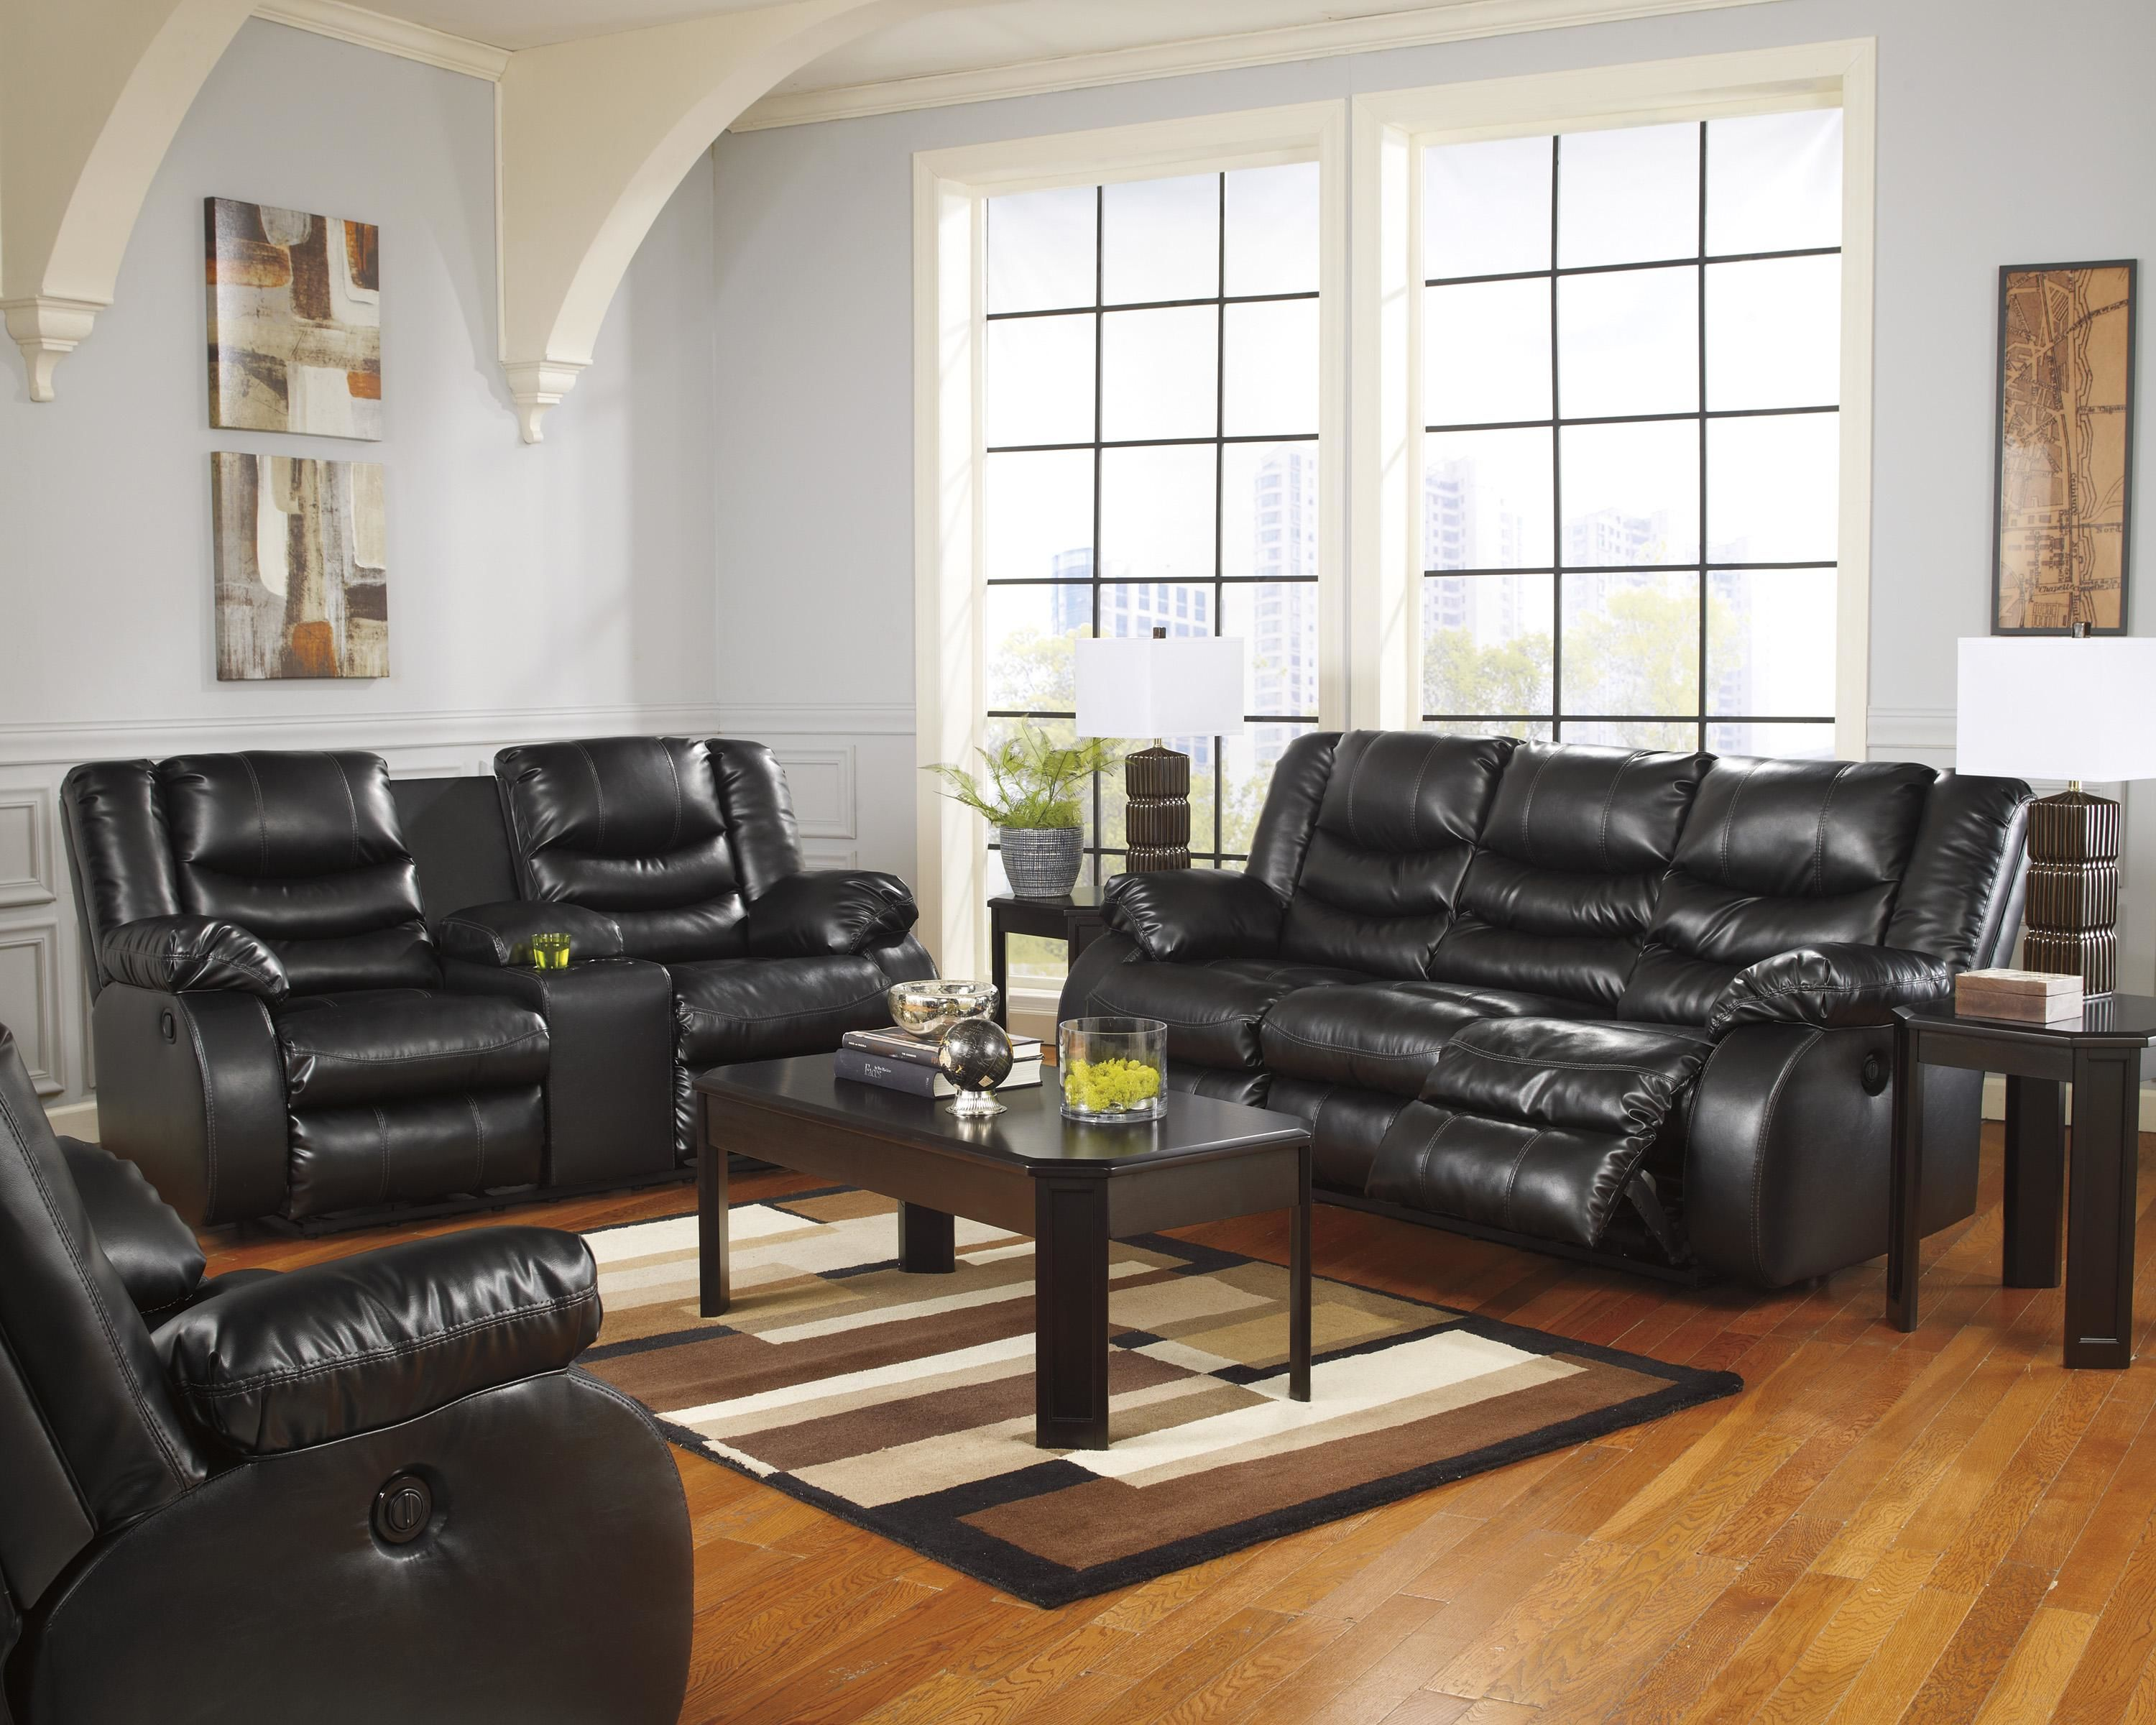 amazing full reclining sofa model-Lovely Full Reclining sofa Ideas